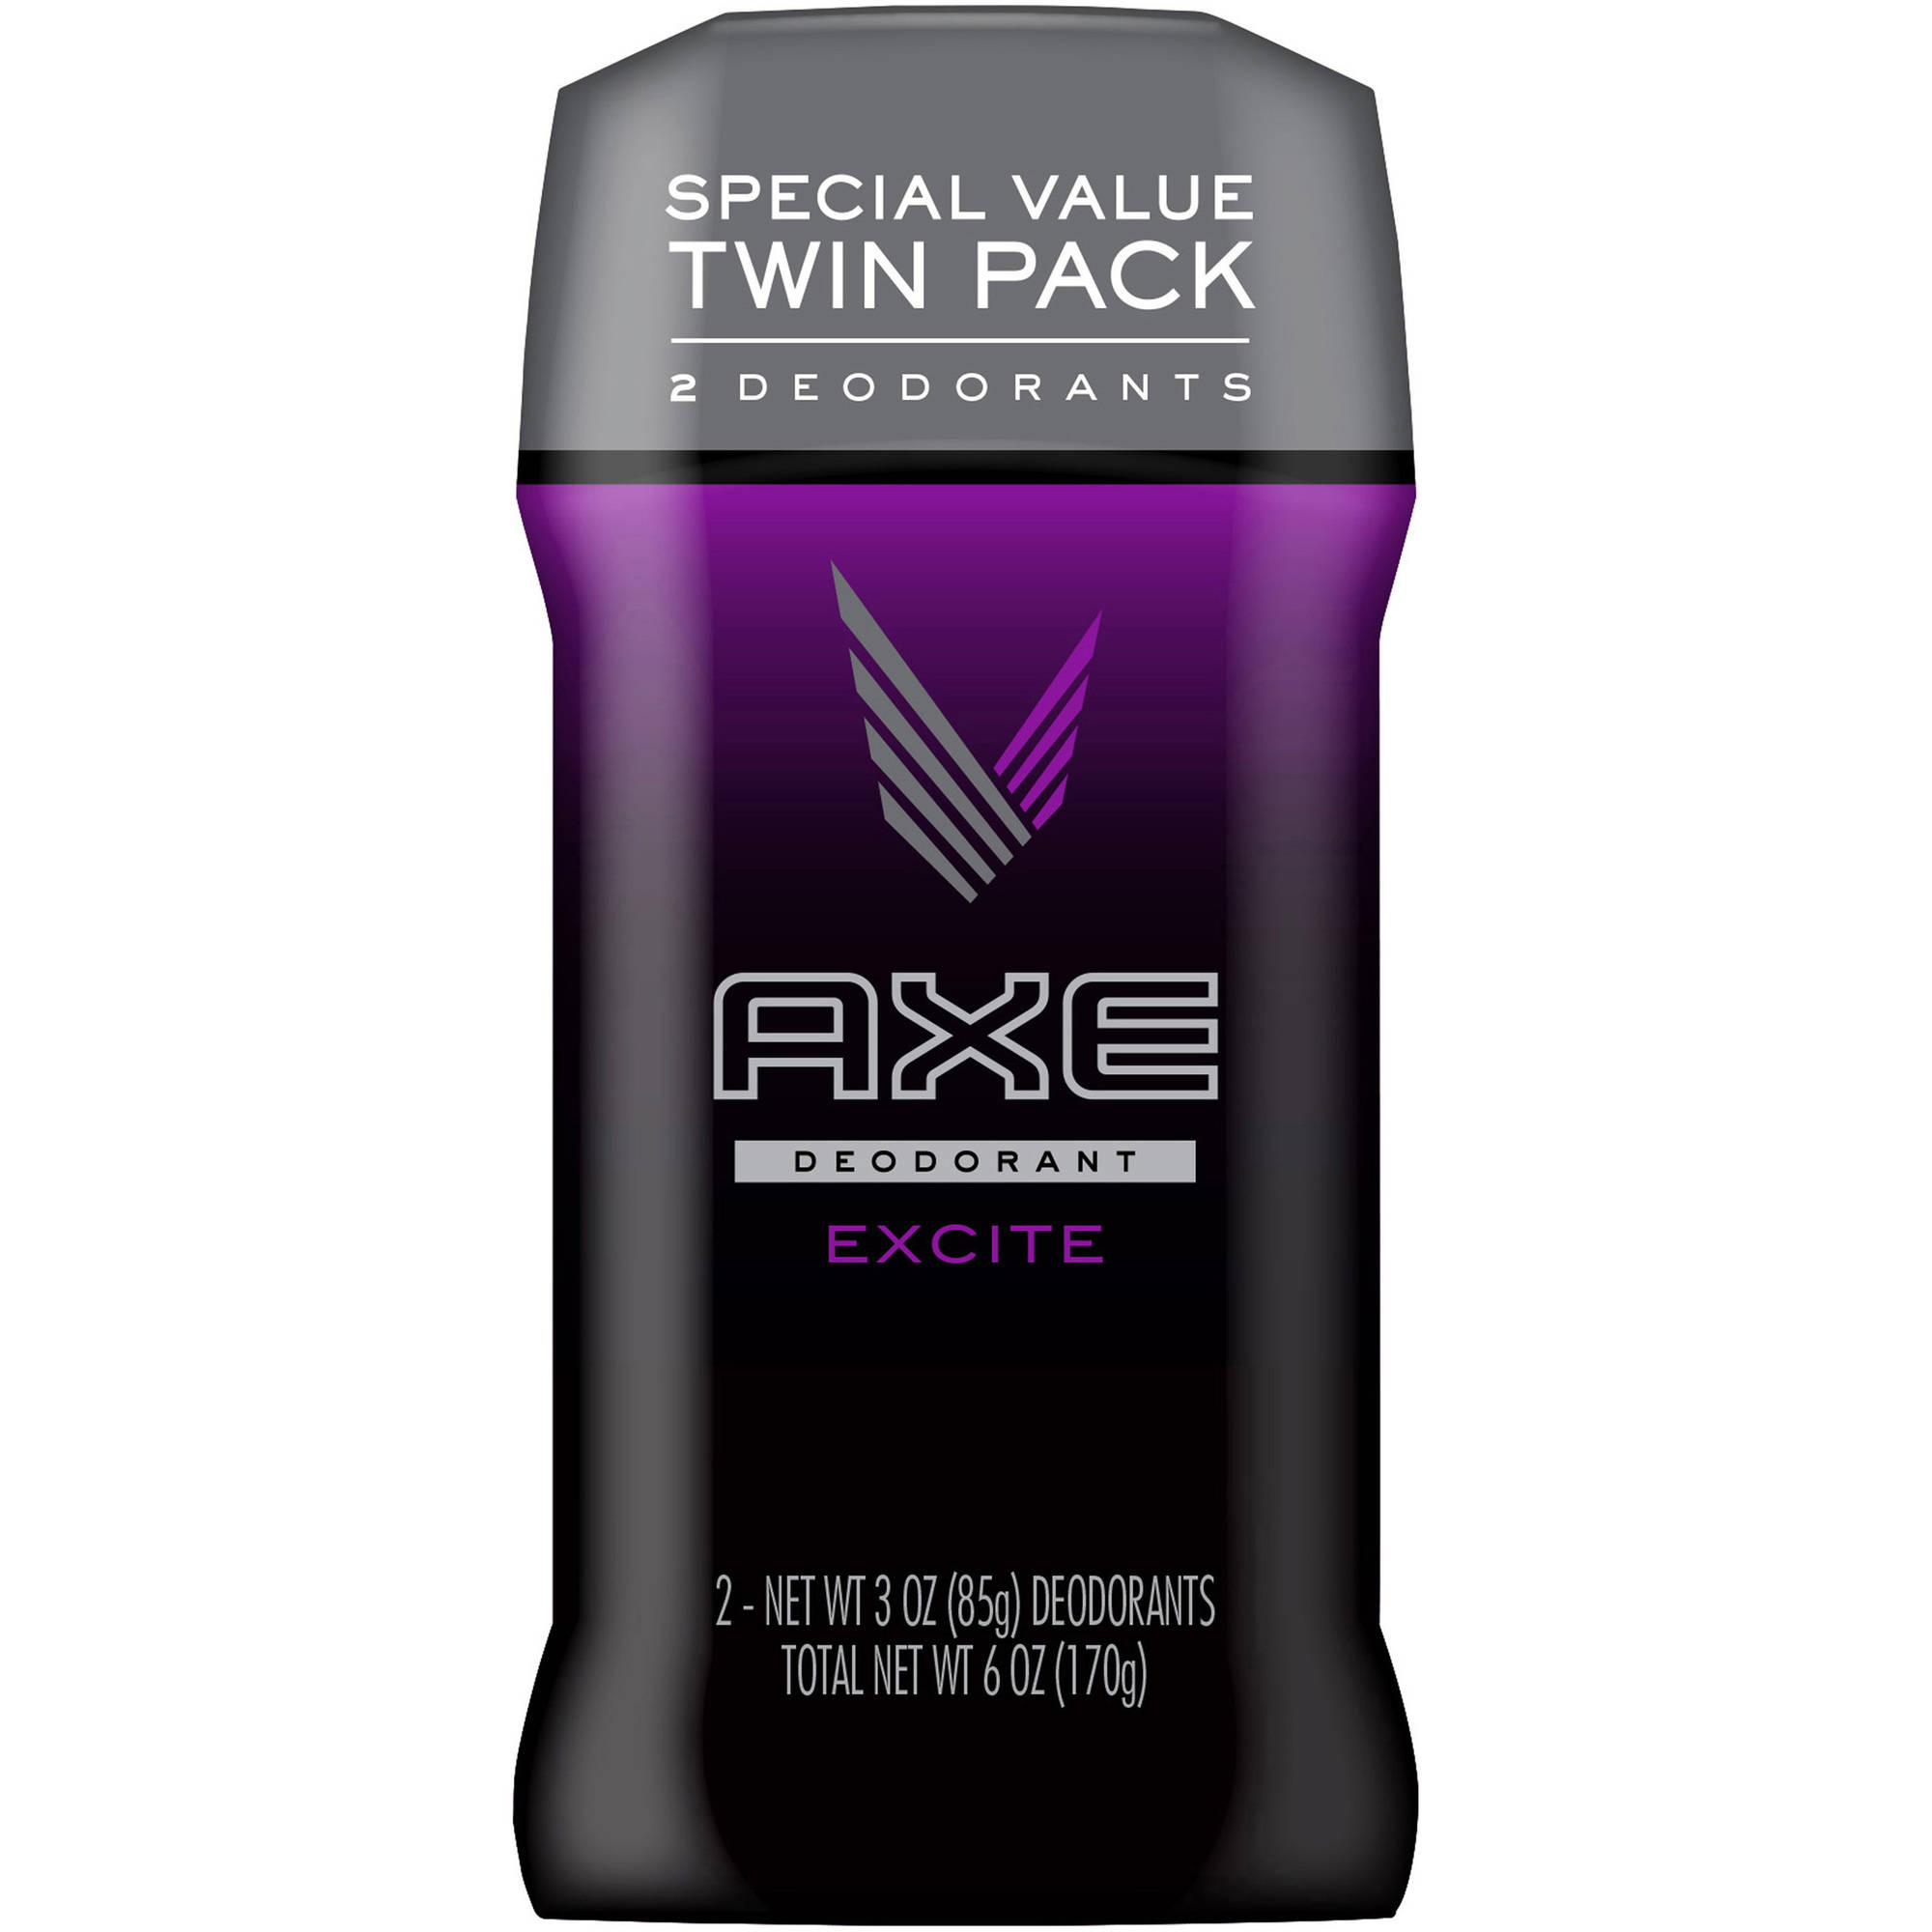 AXE Excite Deodorant Stick for Men, 3 oz, Twin Pack